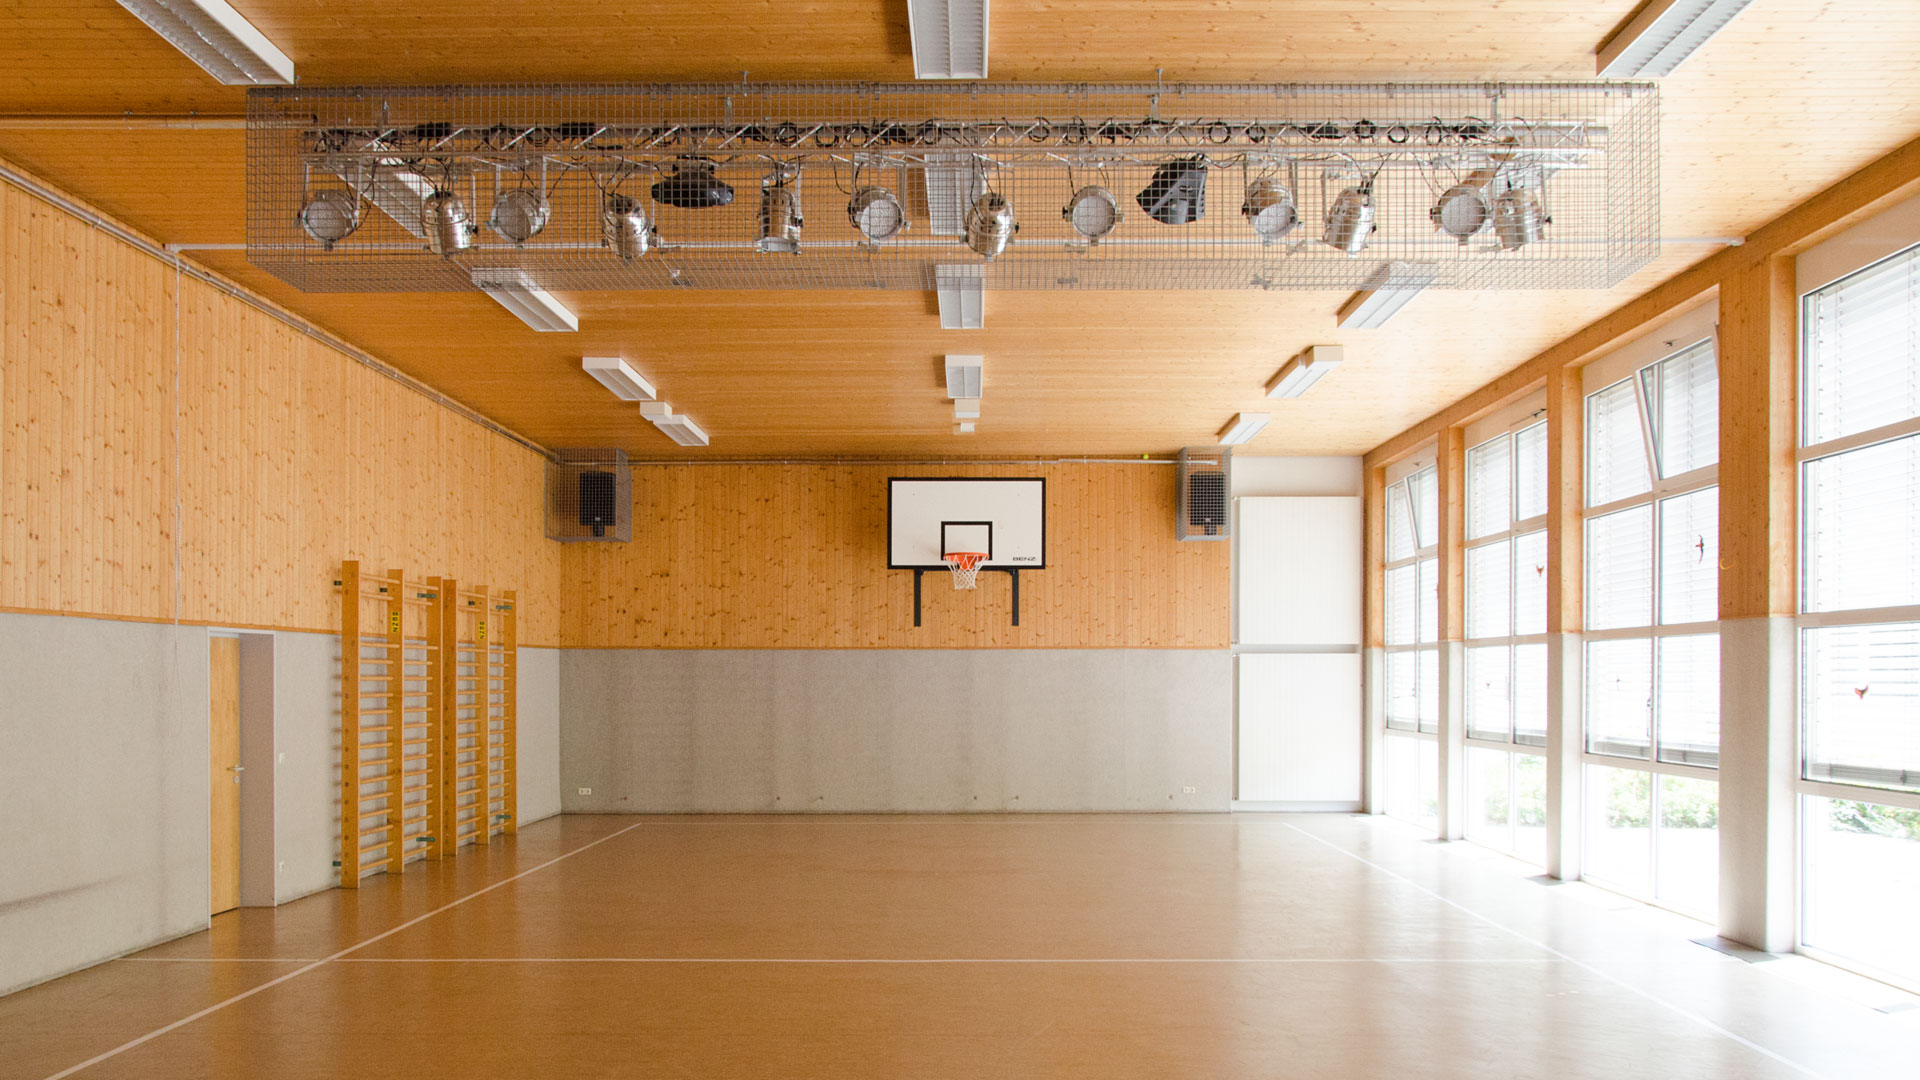 The school's gym